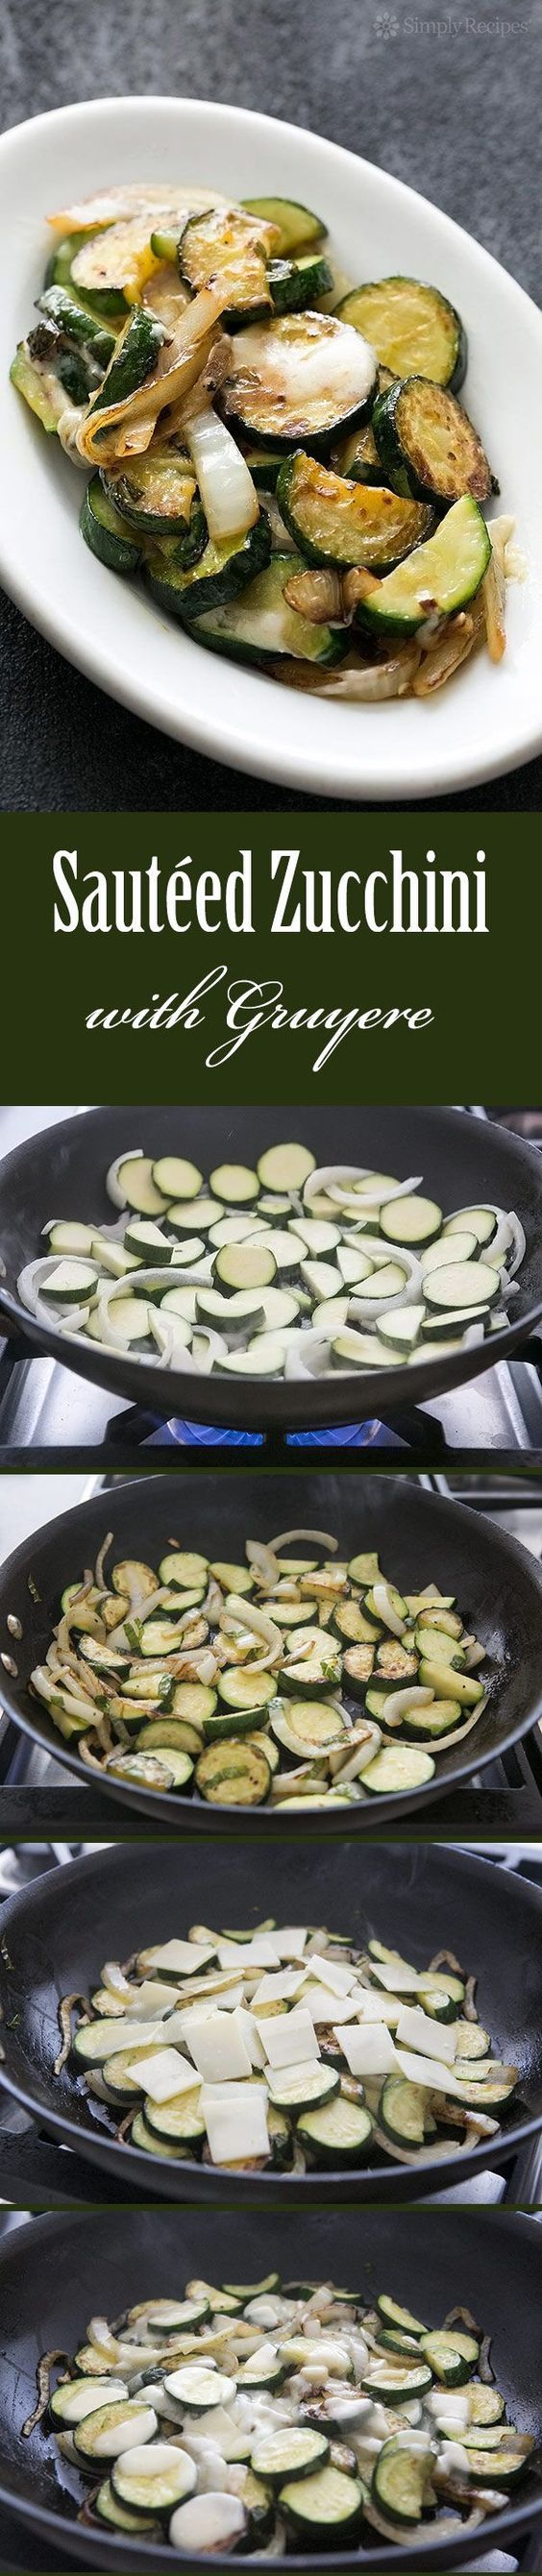 Sautéed Zucchini with Gruyere ~ Simple sauteed zucchini recipe with ...